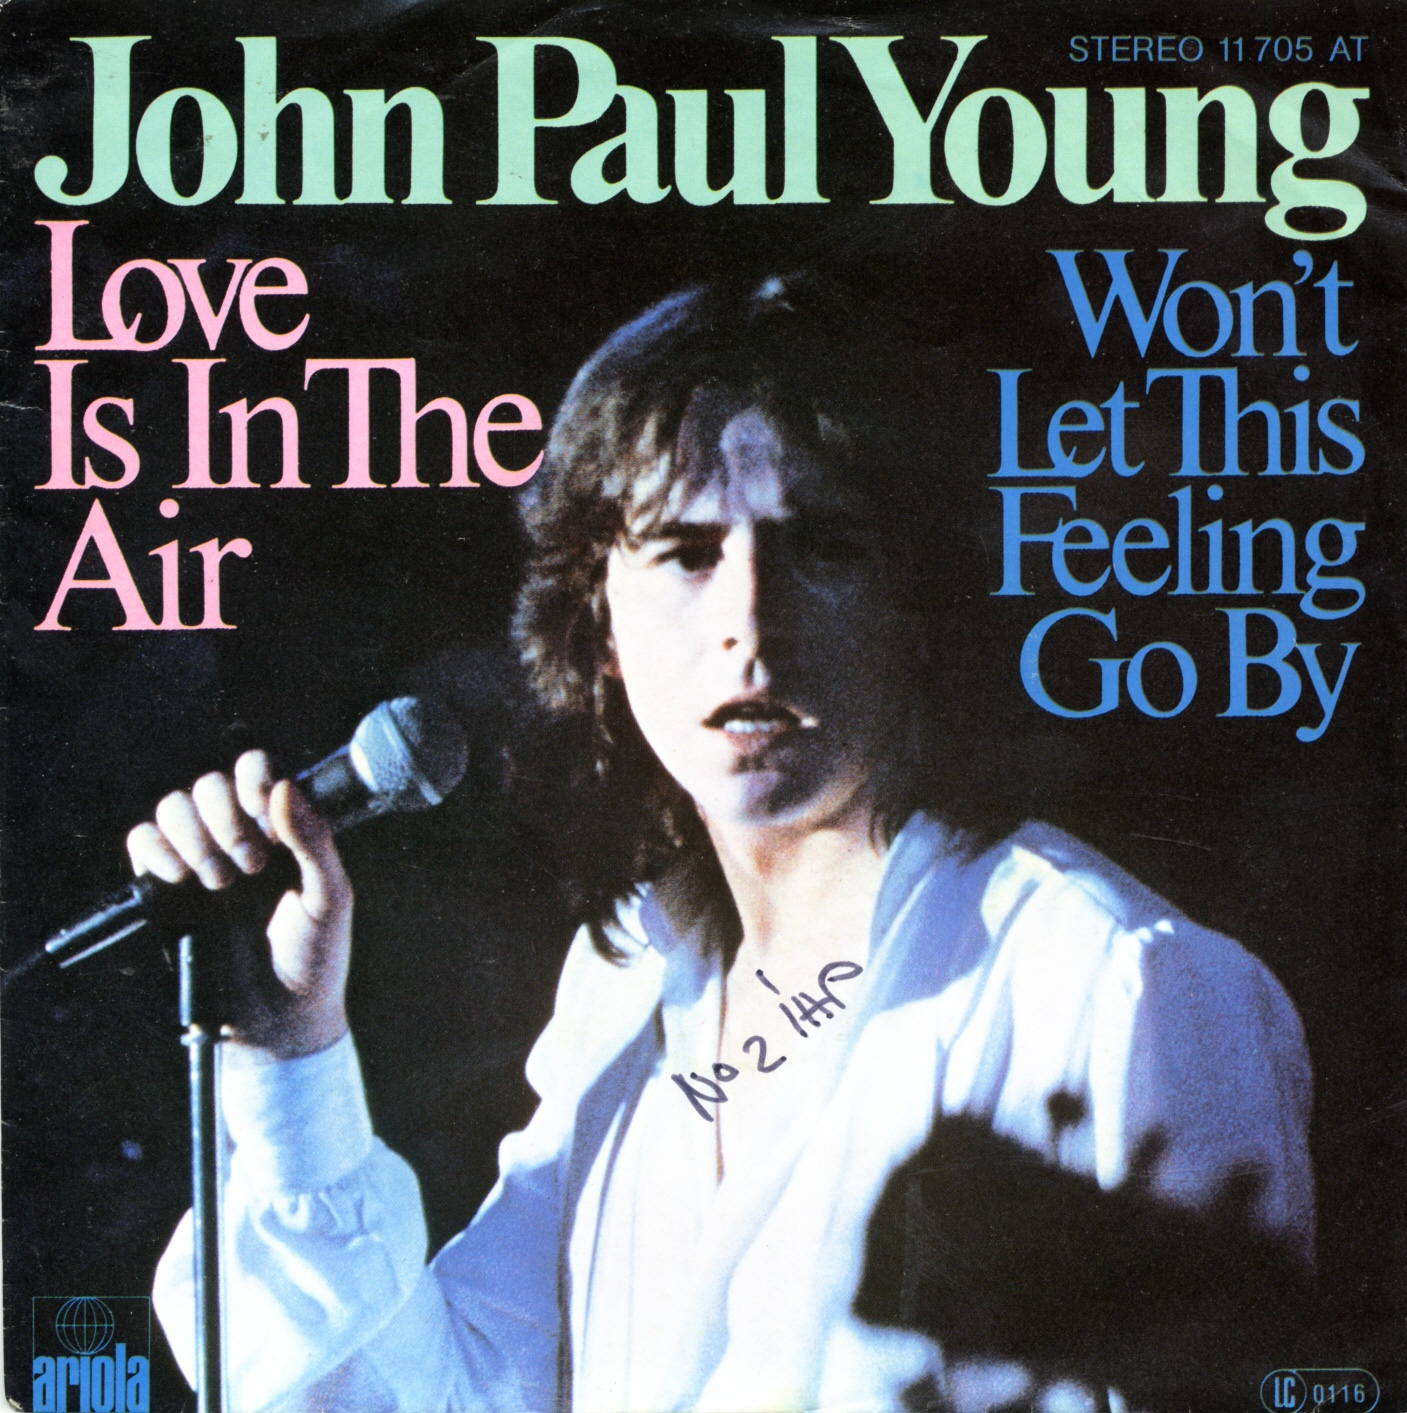 Cover: Love is in the air, John Paul Young